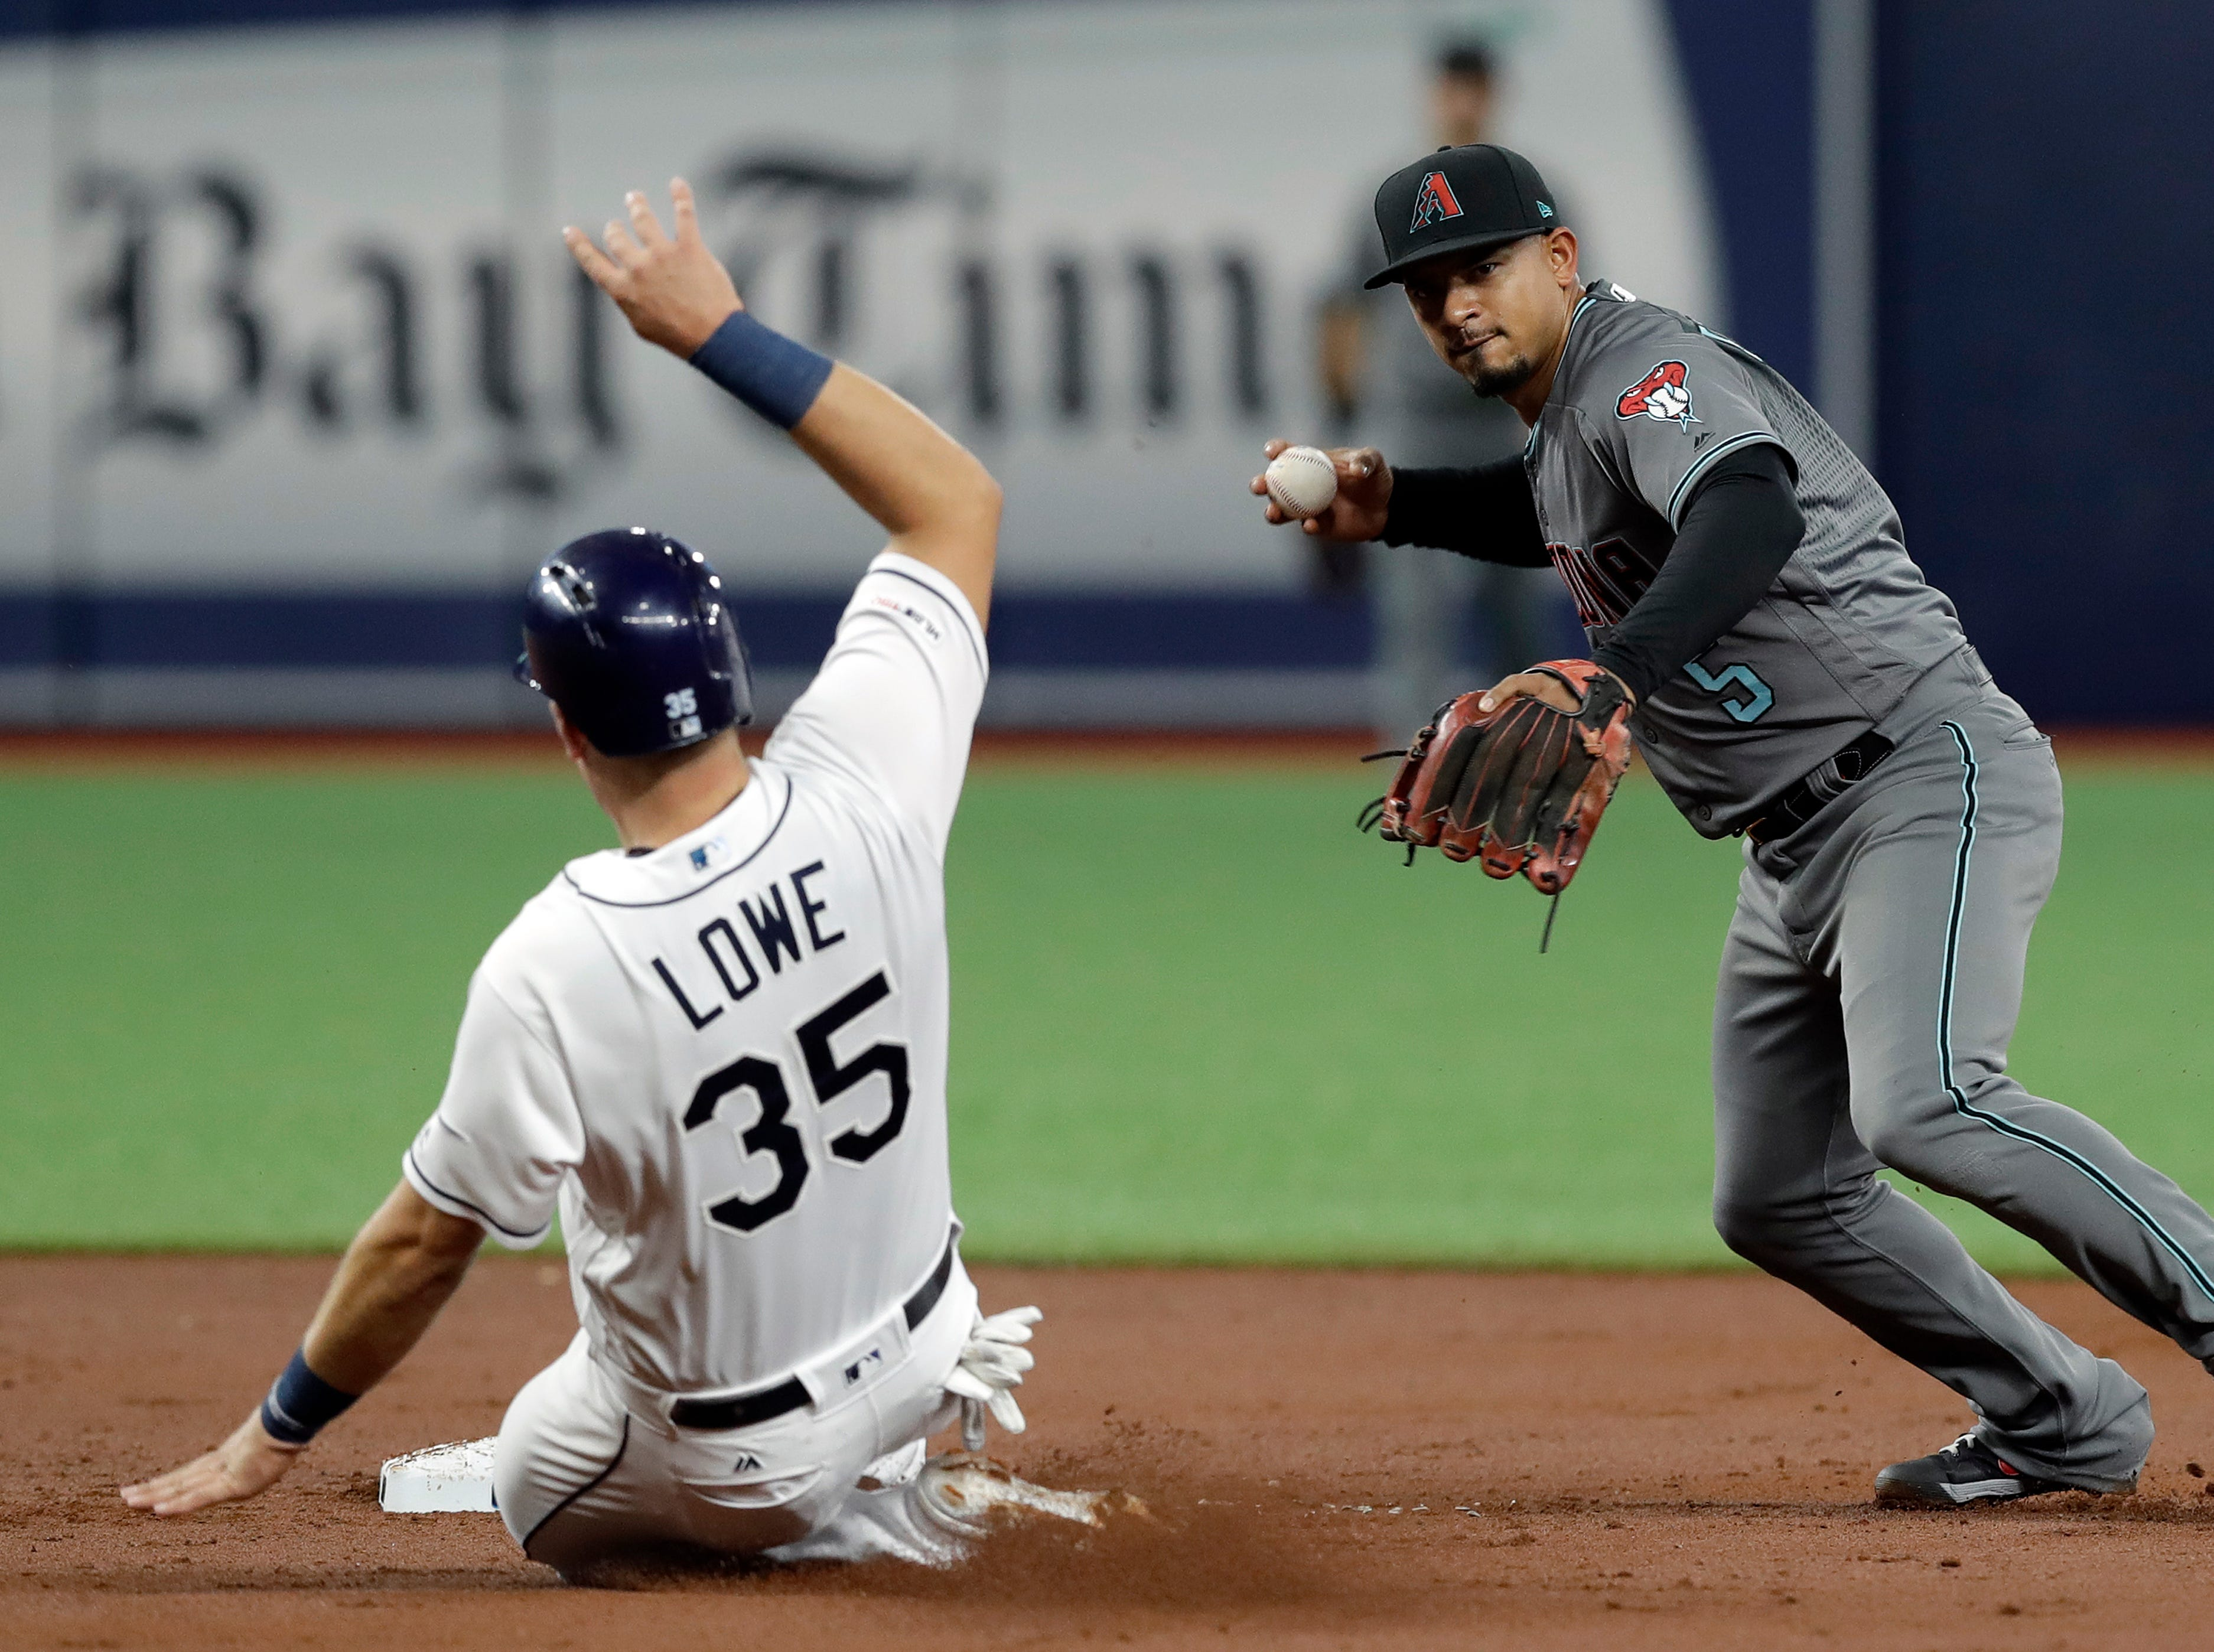 Arizona Diamondbacks' Eduardo Escobar (5) looks to first after forcing out Tampa Bay Rays' Nathaniel Lowe on a ball hit by Kevin Kiermaier, who was safe at first during the second inning of a baseball game Tuesday, May 7, 2019, in St. Petersburg, Fla. (AP Photo/Chris O'Meara)